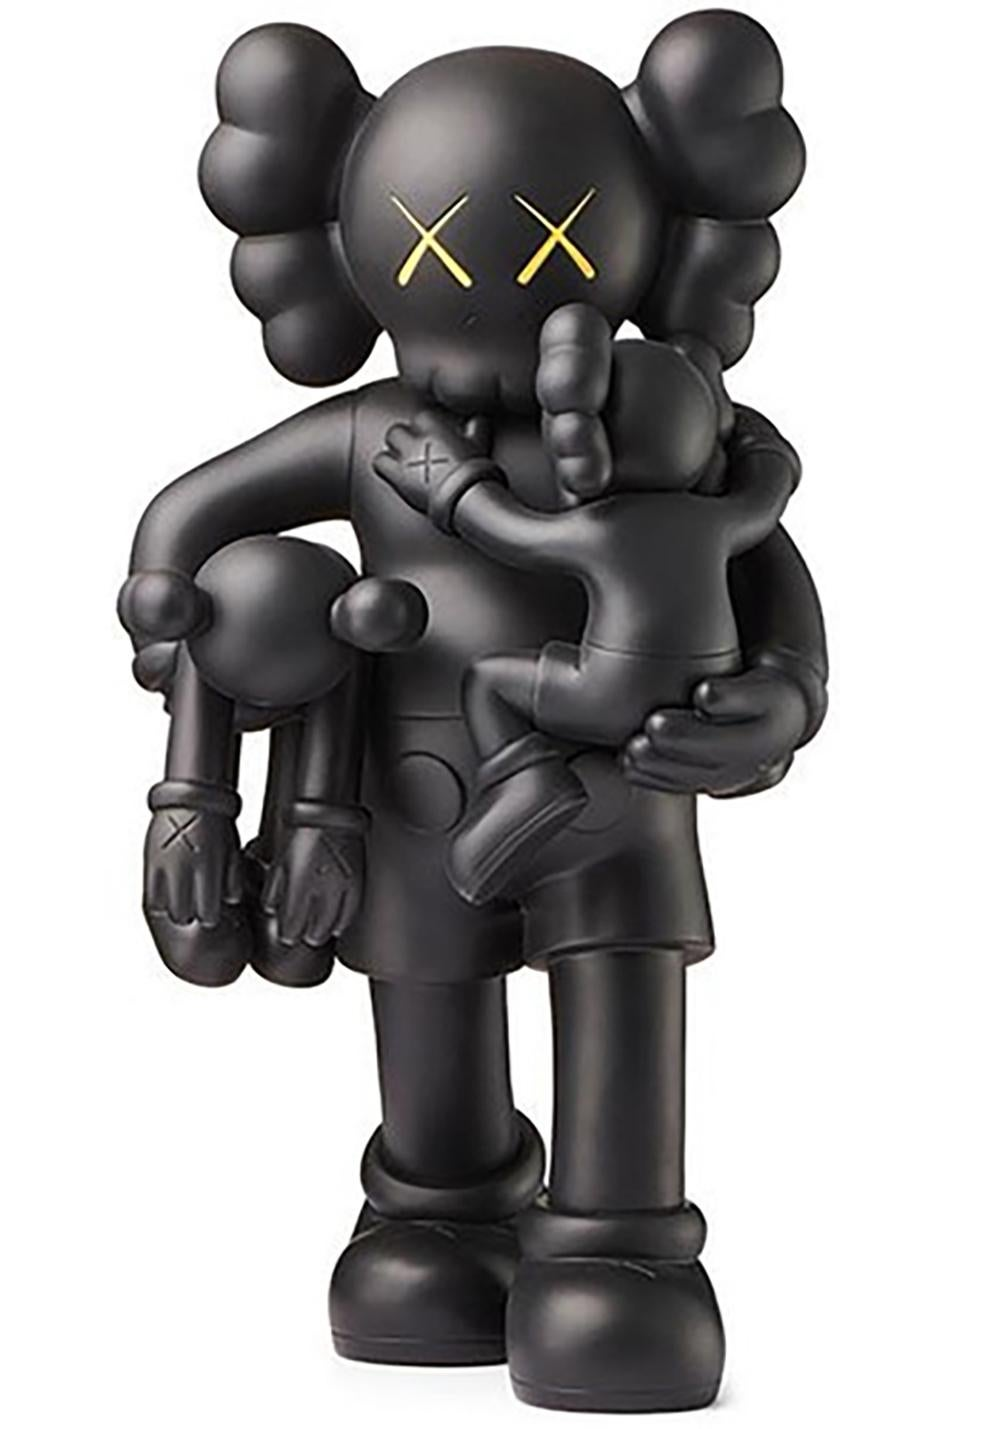 KAWS - Clean Slate - Black Version - acquired from Museum - brand new